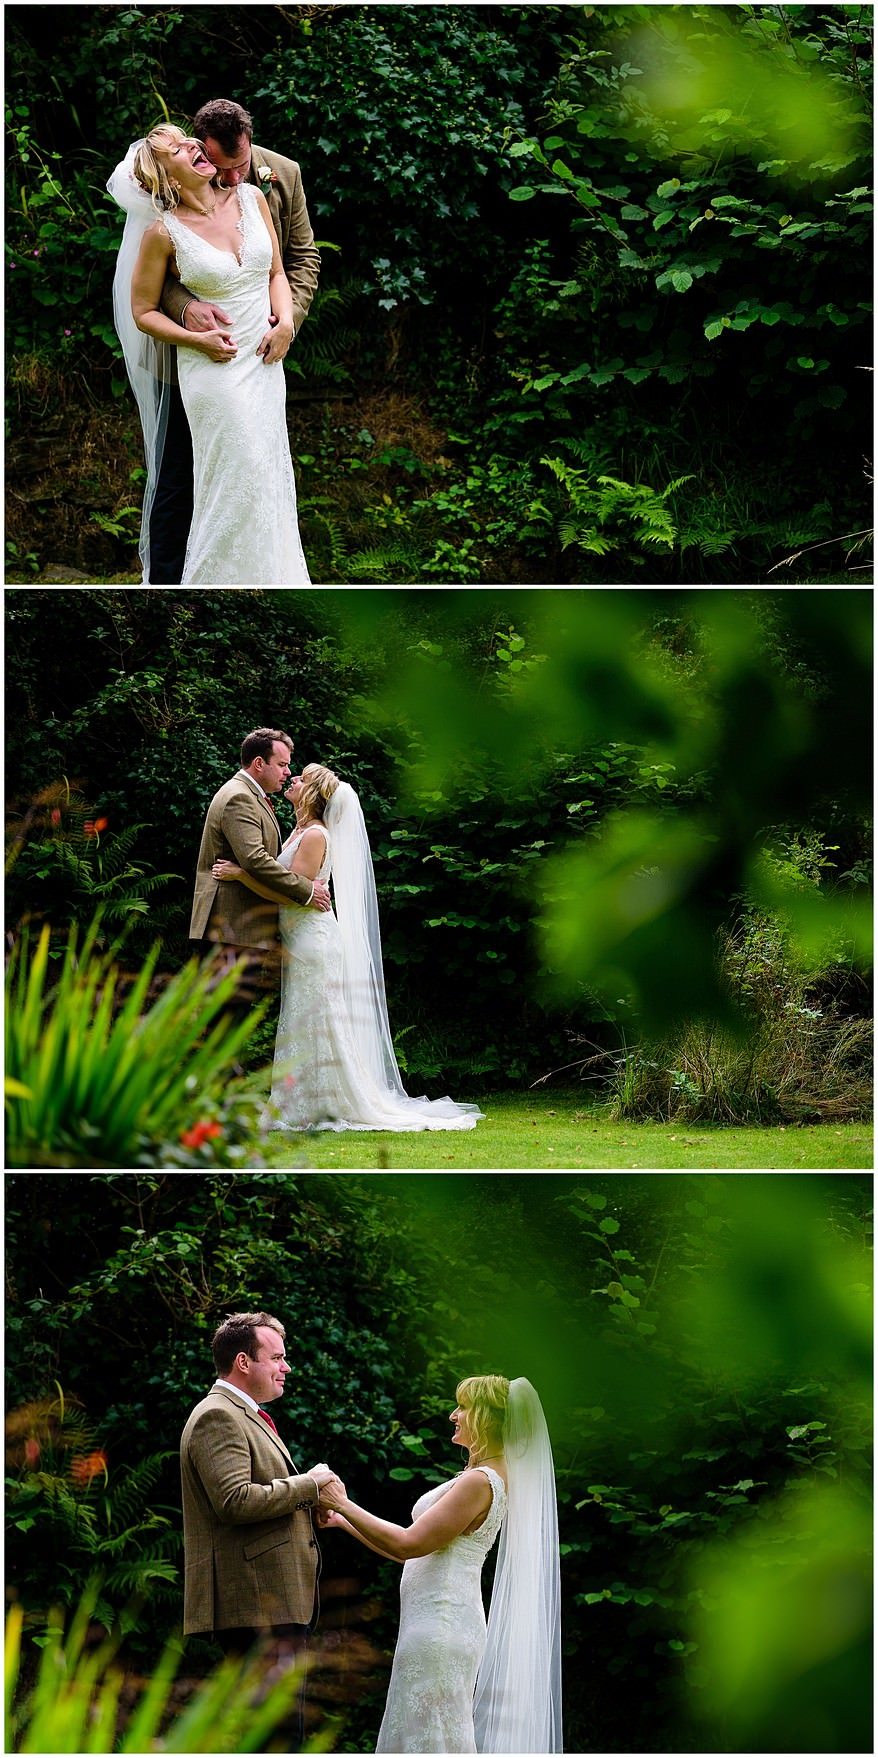 relaxed wedding photography at Coads green village hall